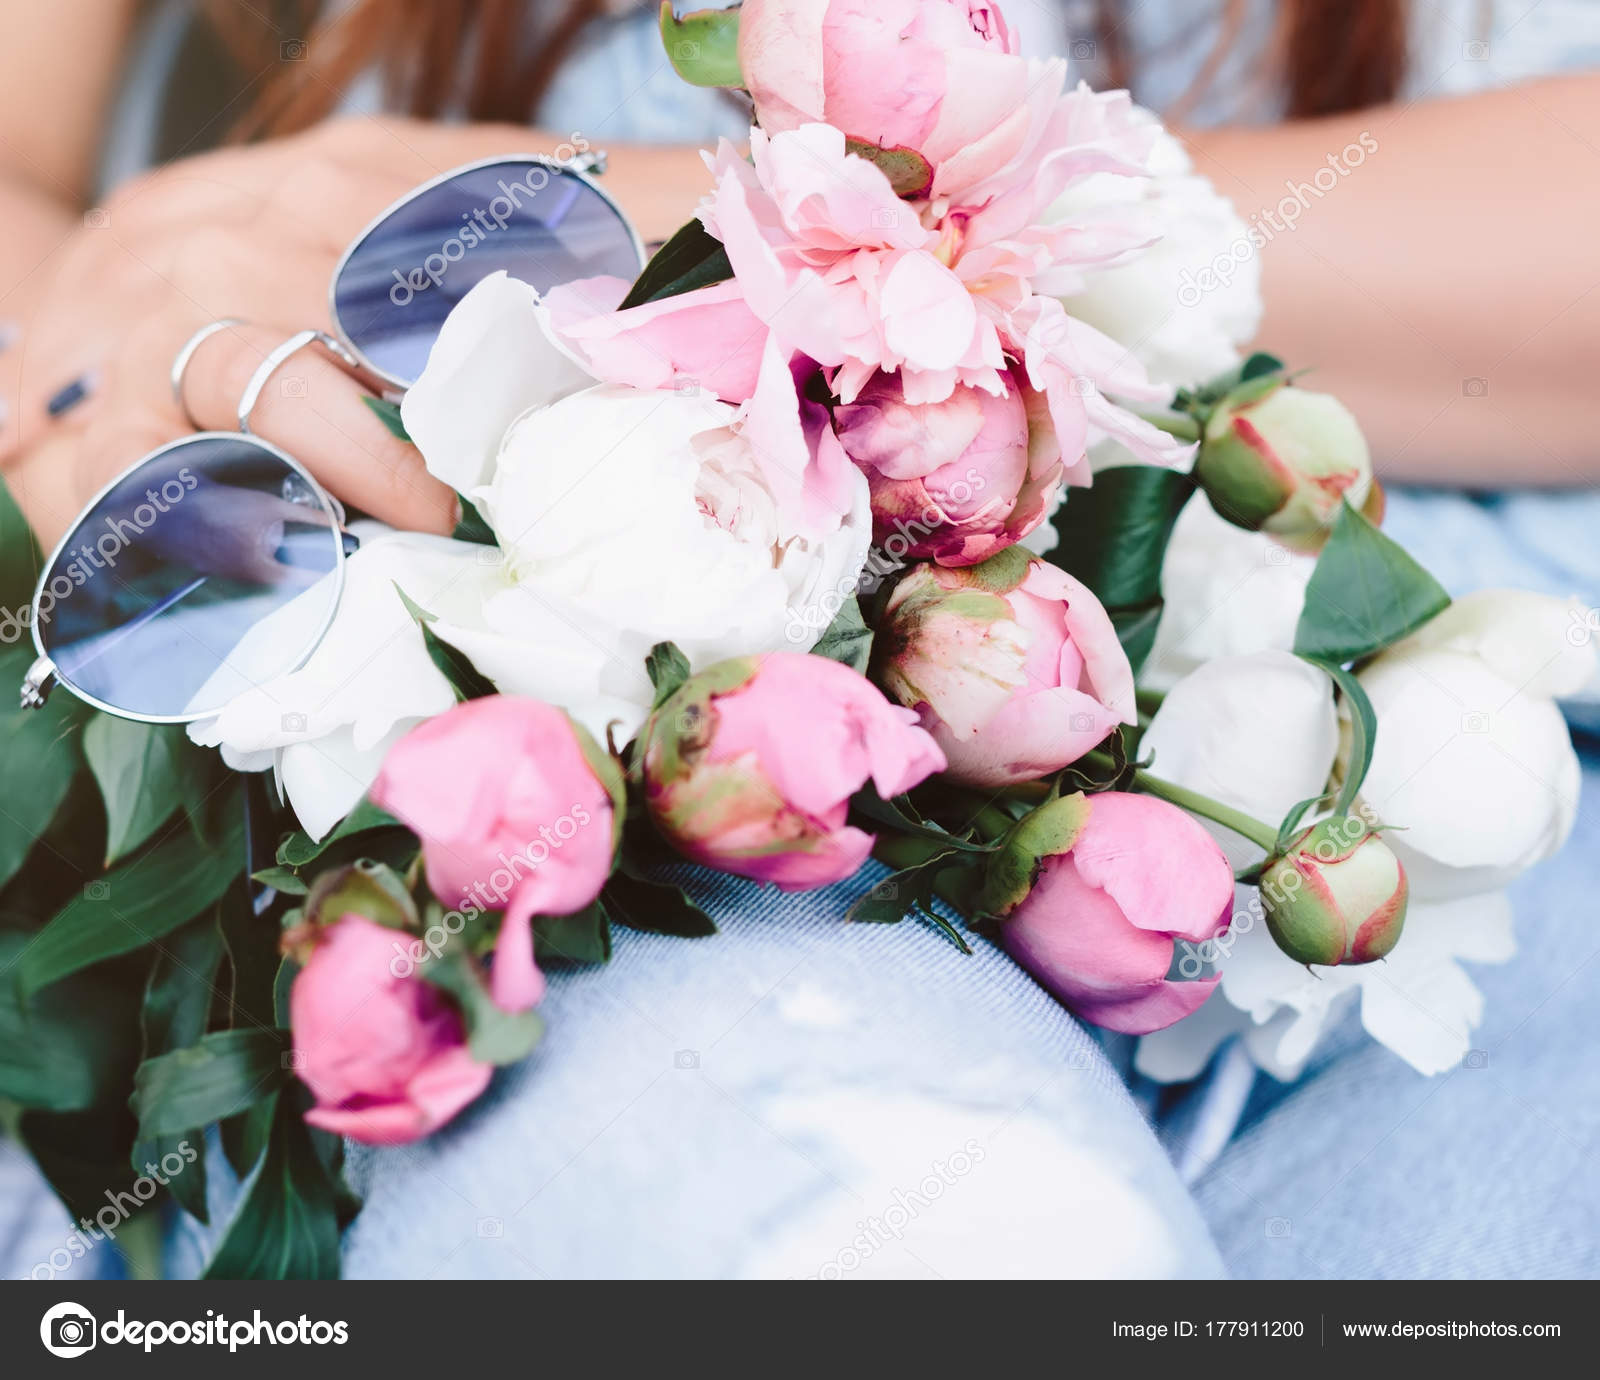 Young woman holding beautiful bunch peons her hands spring present young woman holding a beautiful bunch of peons in her hands spring present for a girl in a jeans outfit flowers bouquet photo by nicoleclaudia izmirmasajfo